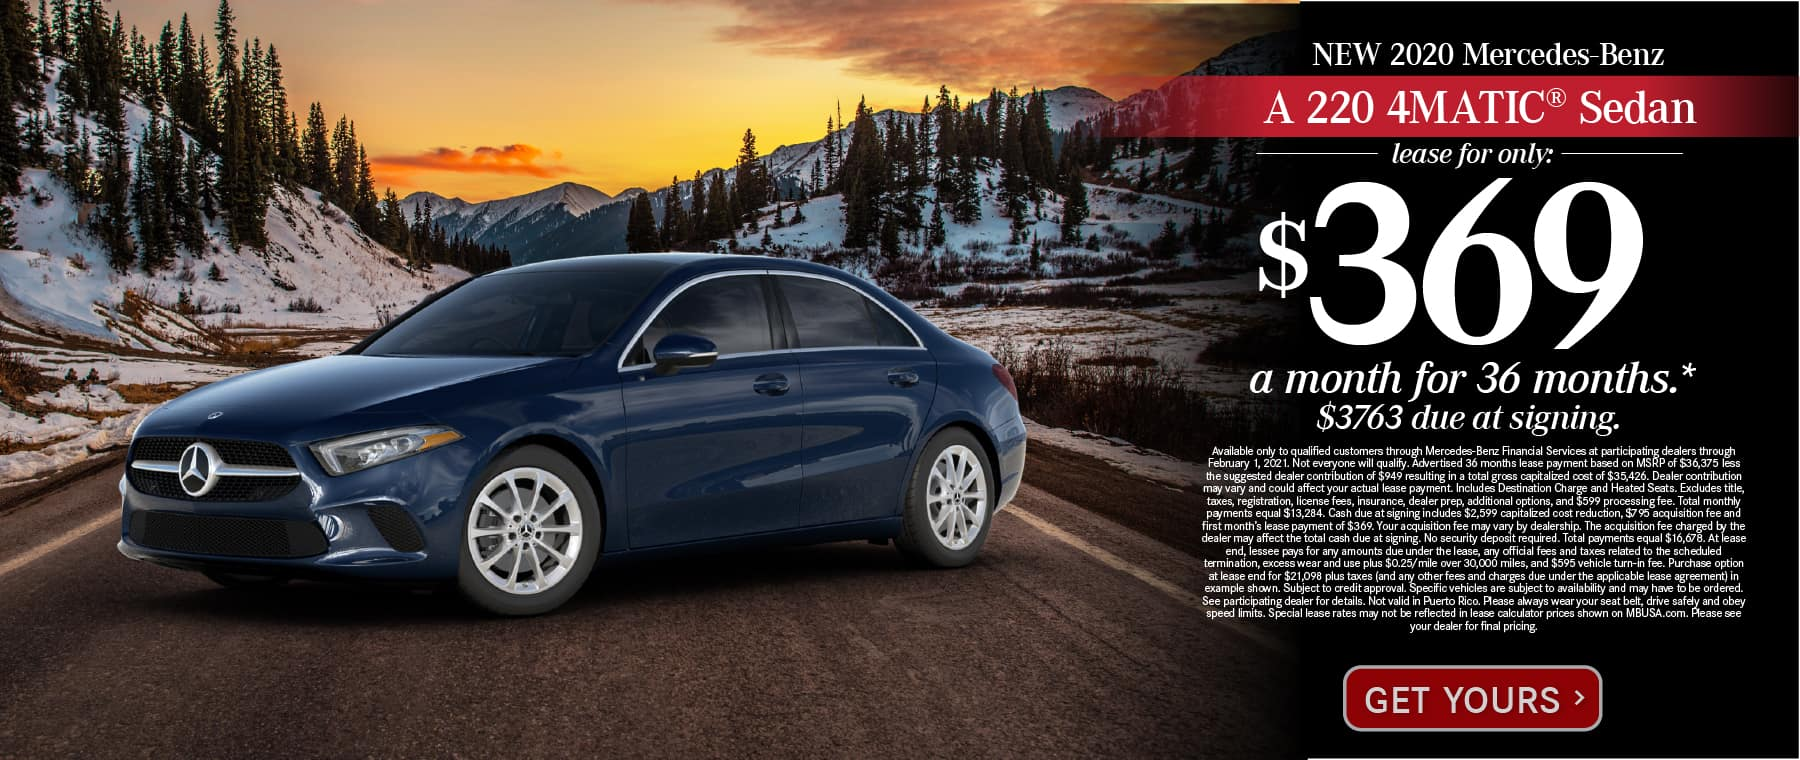 New 2021 Mercedes-Benz A 220 4MATIC® Lease for only: $369 a month for 36 months. $3673 due at signing. Get Yours.